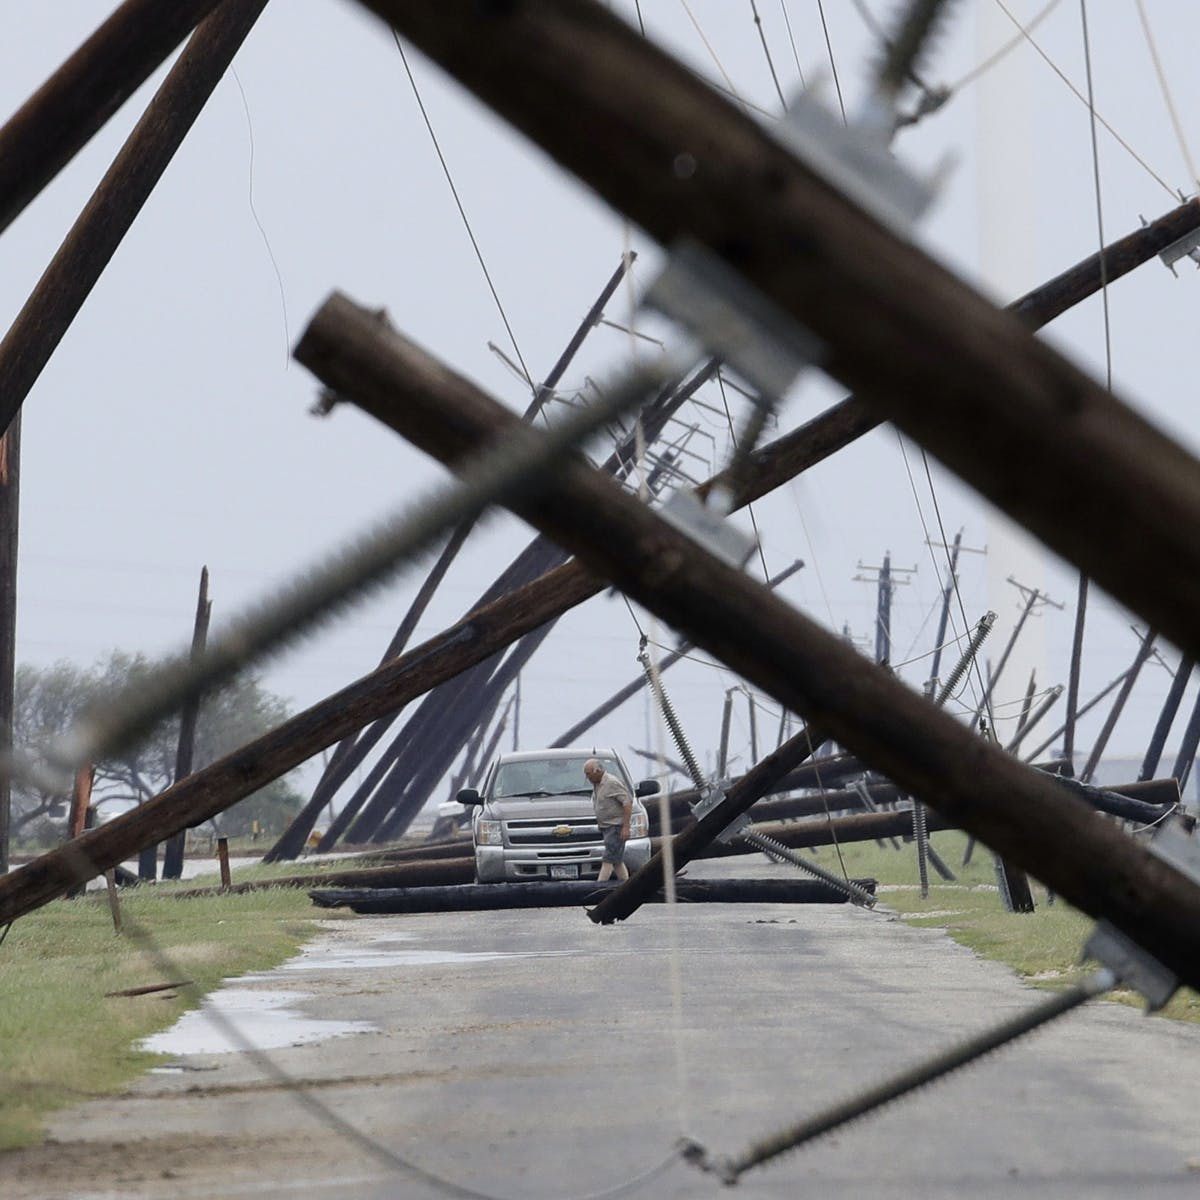 Should the US put power lines underground?